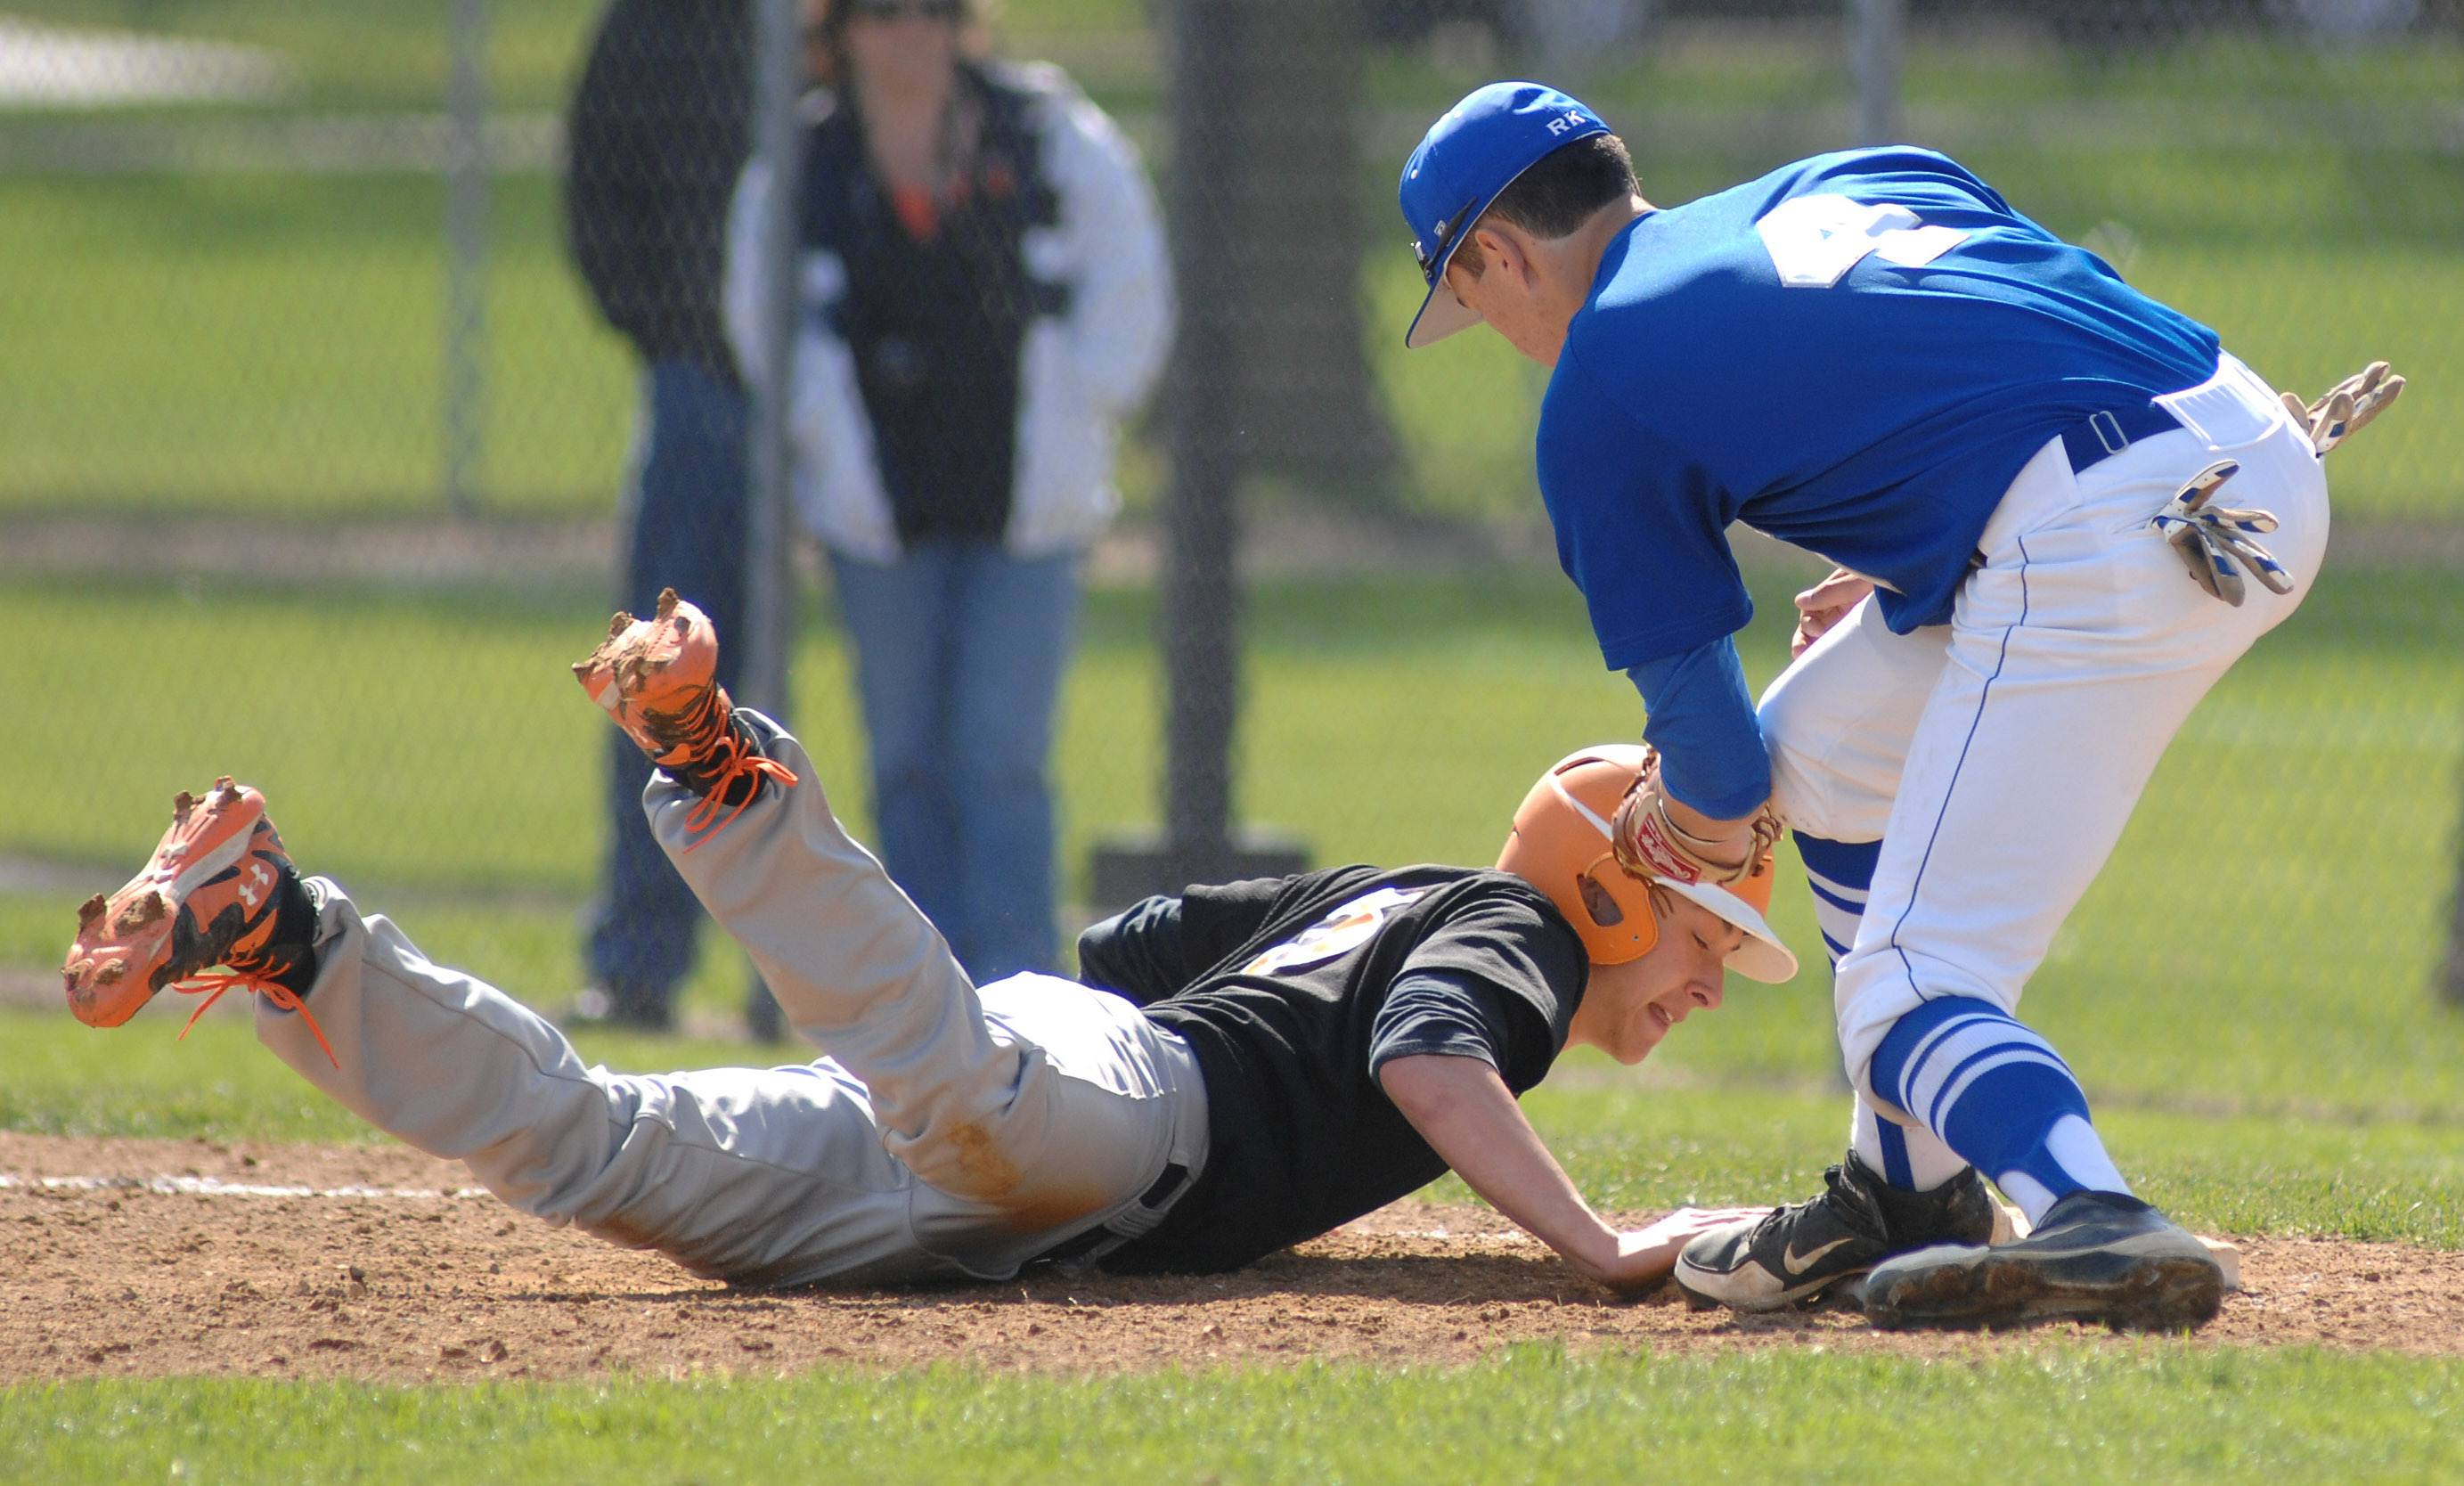 St. Charles East's Austin Regelbrugge is safe back on first base from Geneva's Nick Porretto in the fifth inning on Saturday, May 3.